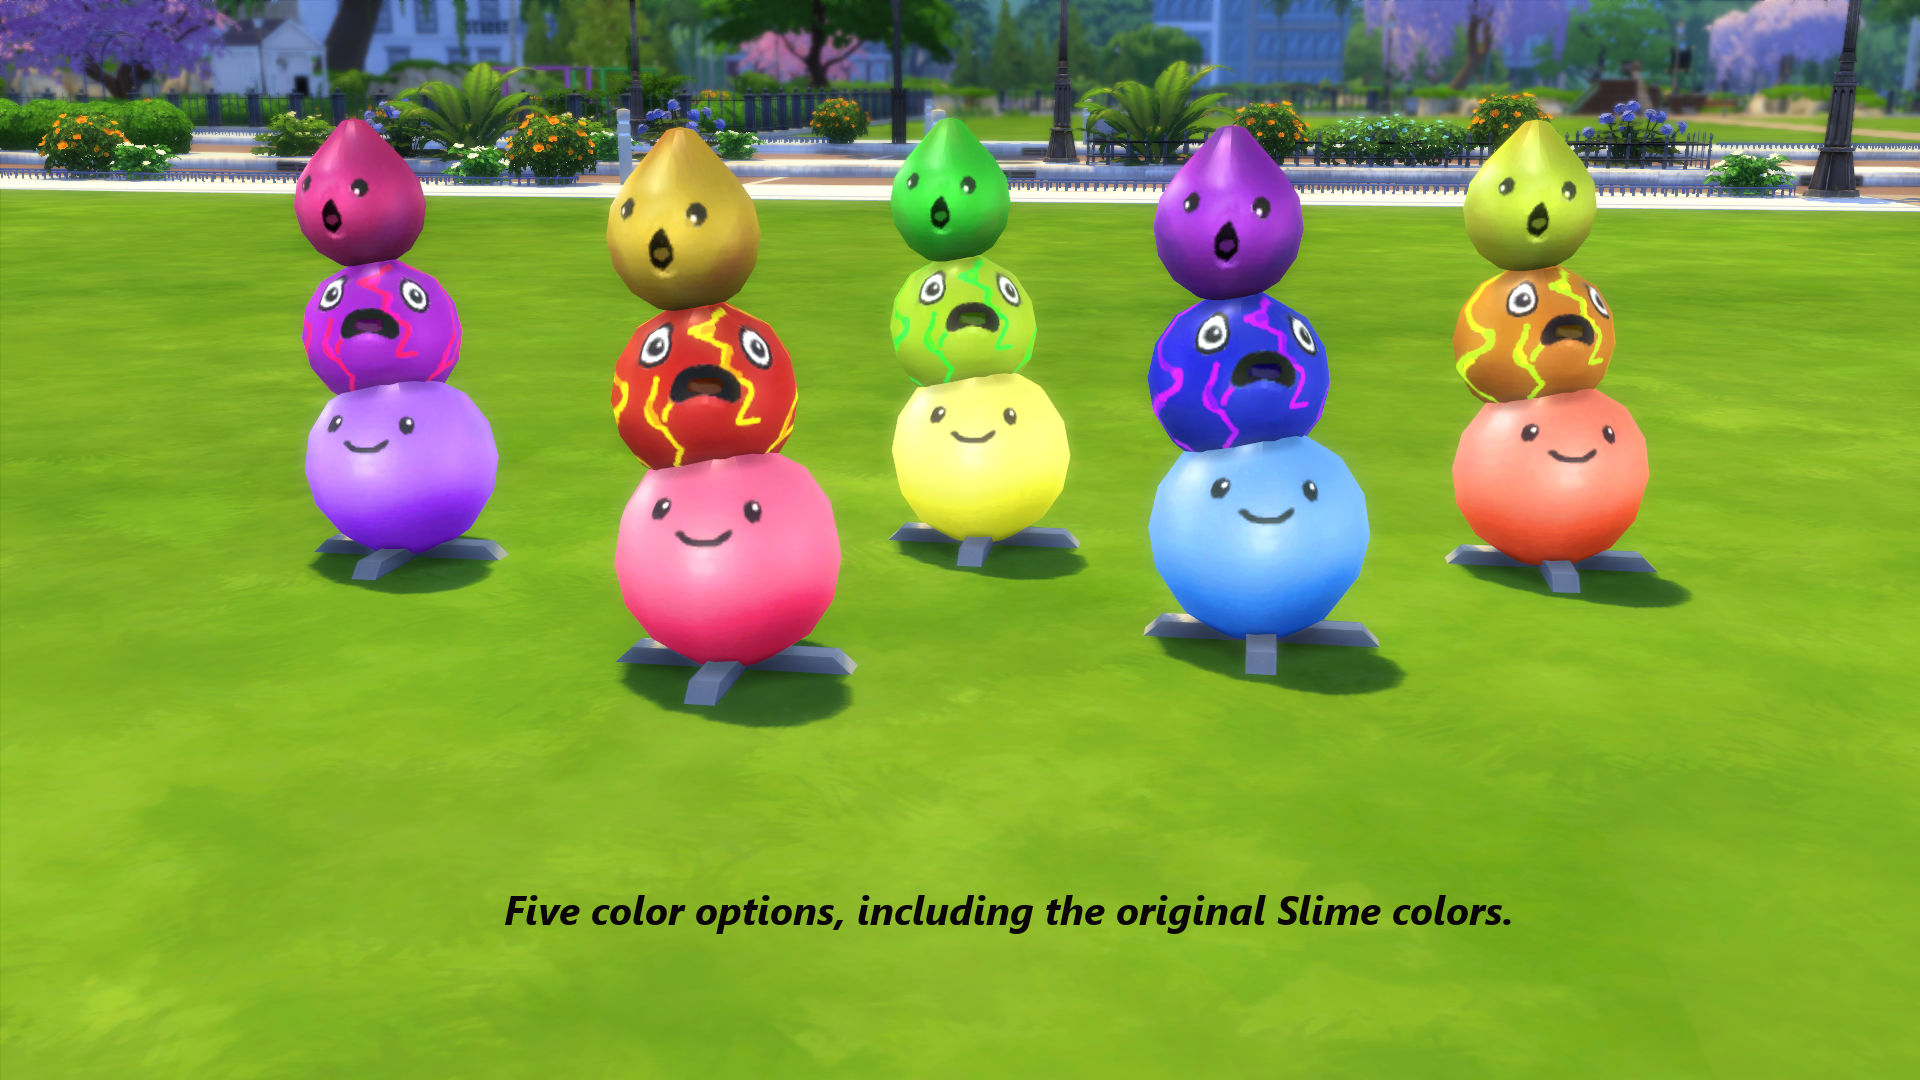 Mod The Sims - Slime Rancher Glowing Floor Sculptures: The